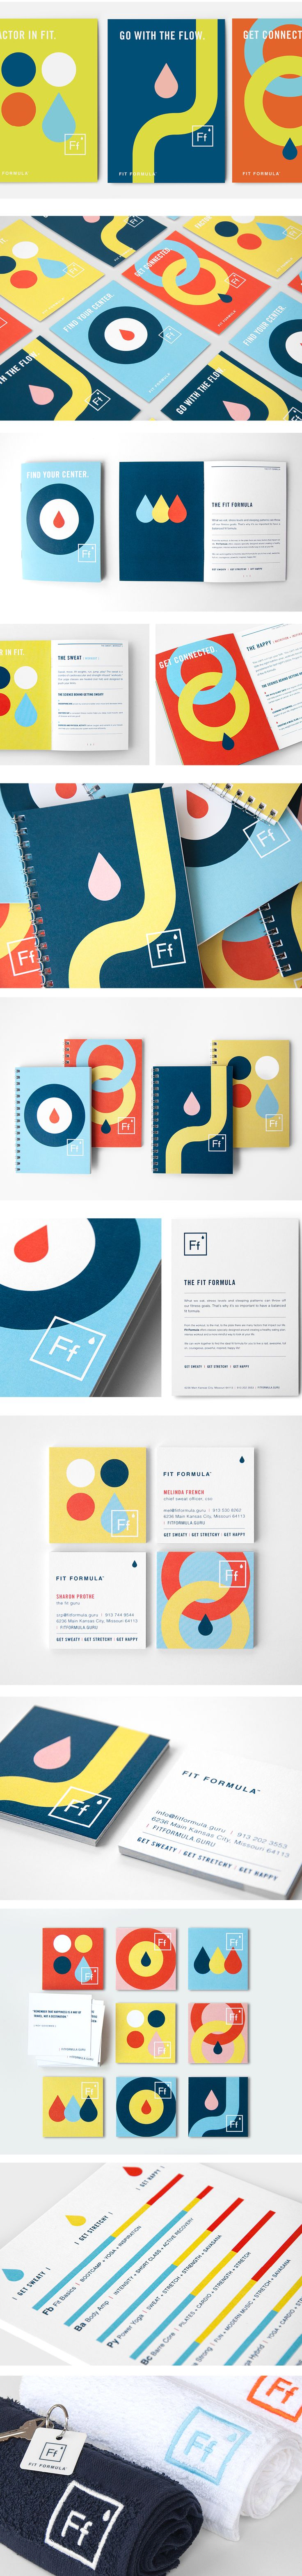 Fit Formula | Branding Copywriting Design Illustration Interior Integration Marketing Materials Name | Design Ranch